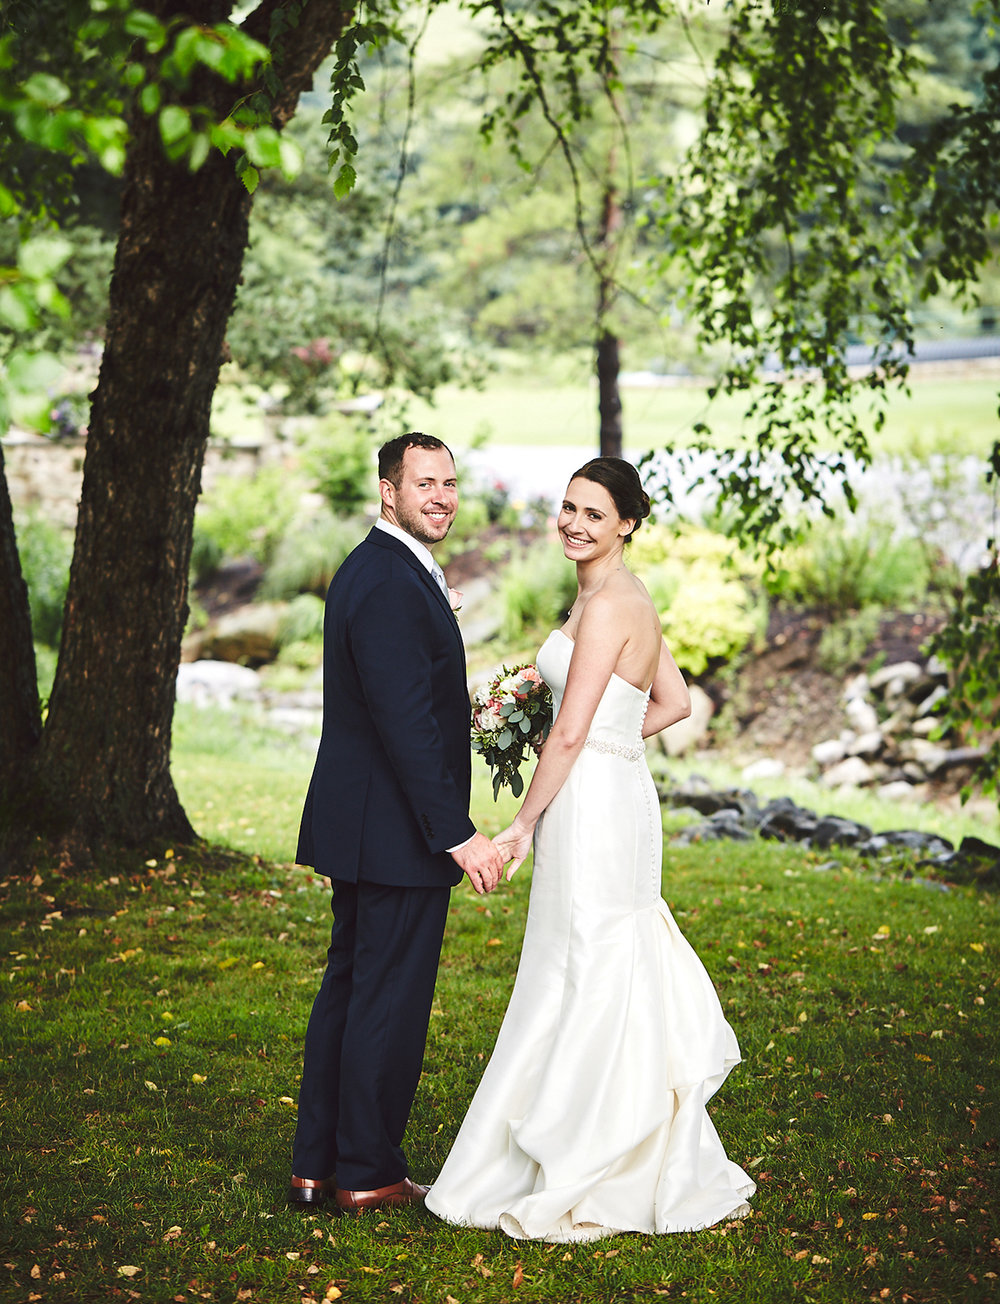 180714_HolidayValleyLodgeWeddingPhotography_By_BriJohnsonWeddings_0112.jpg